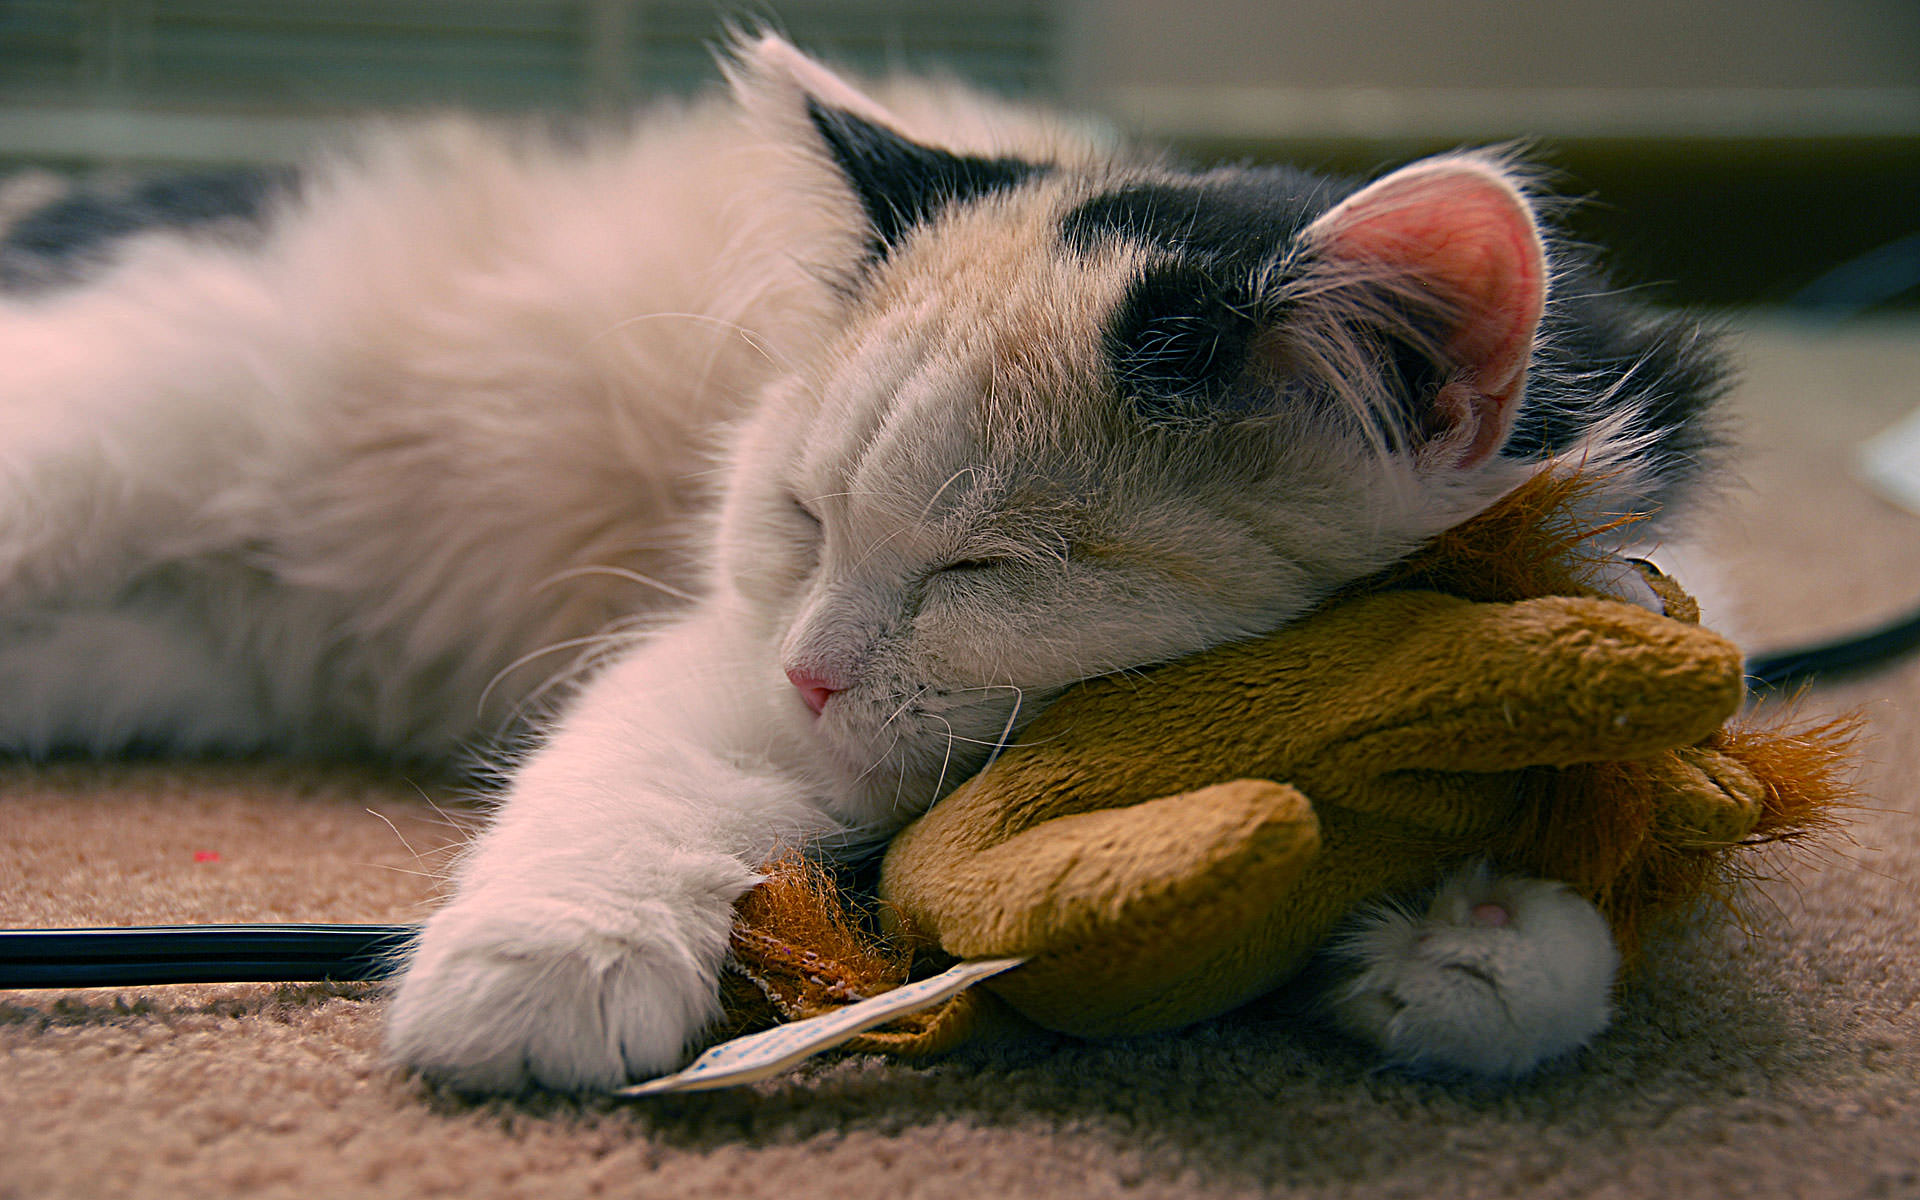 Sleeping Cat with Toe Wallpaper